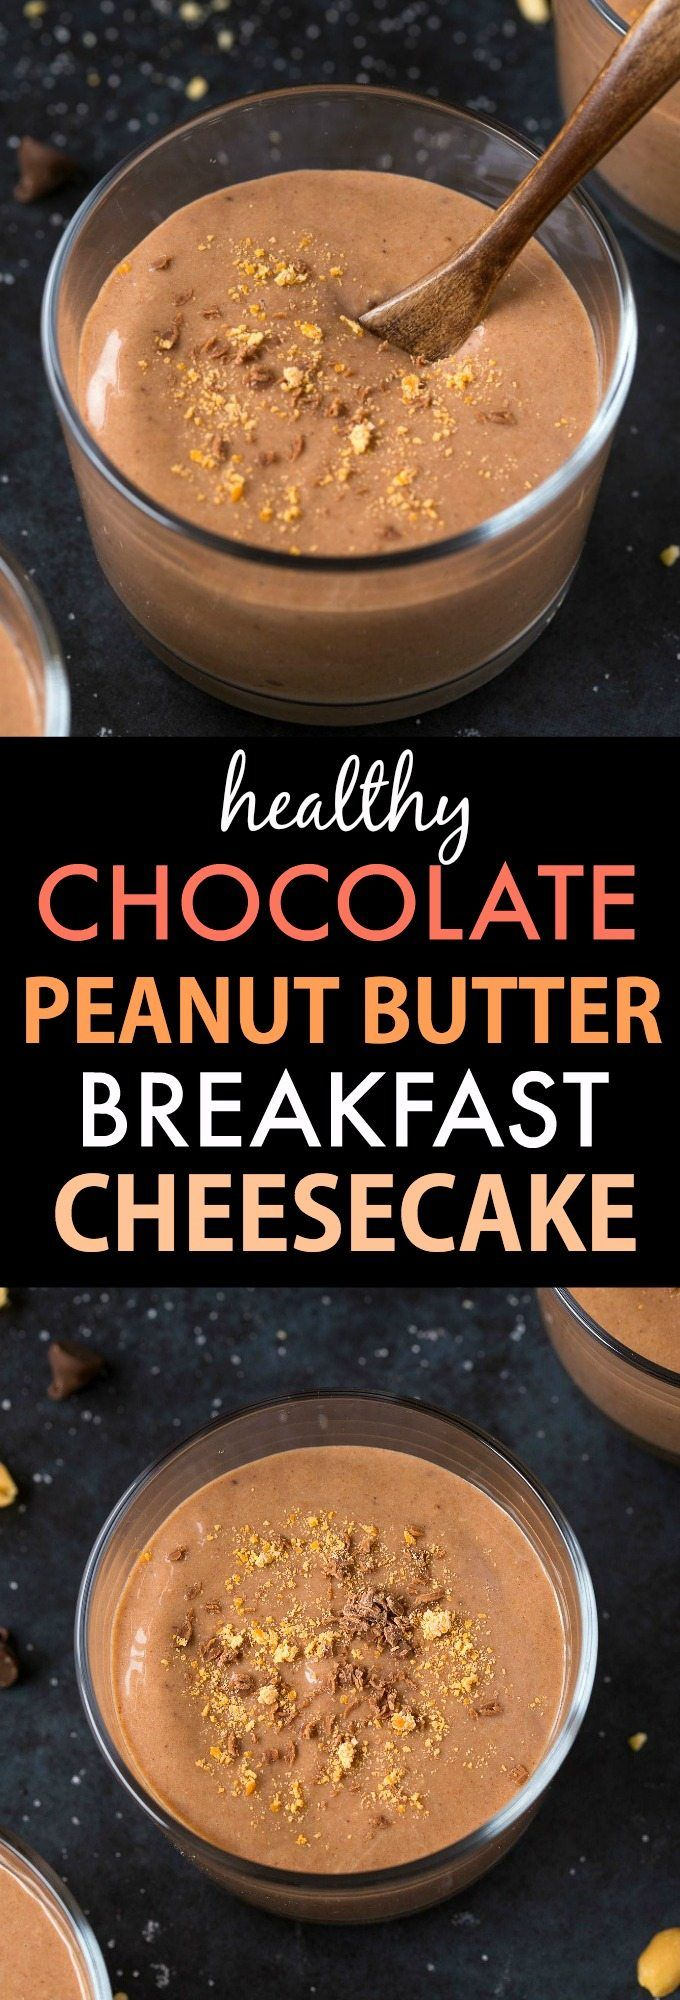 Healthy Chocolate Peanut Butter Breakfast Cheesecake (Vegan, Gluten Free, Sugar Free)- Thick, creamy and low calorie, but full of flavor!